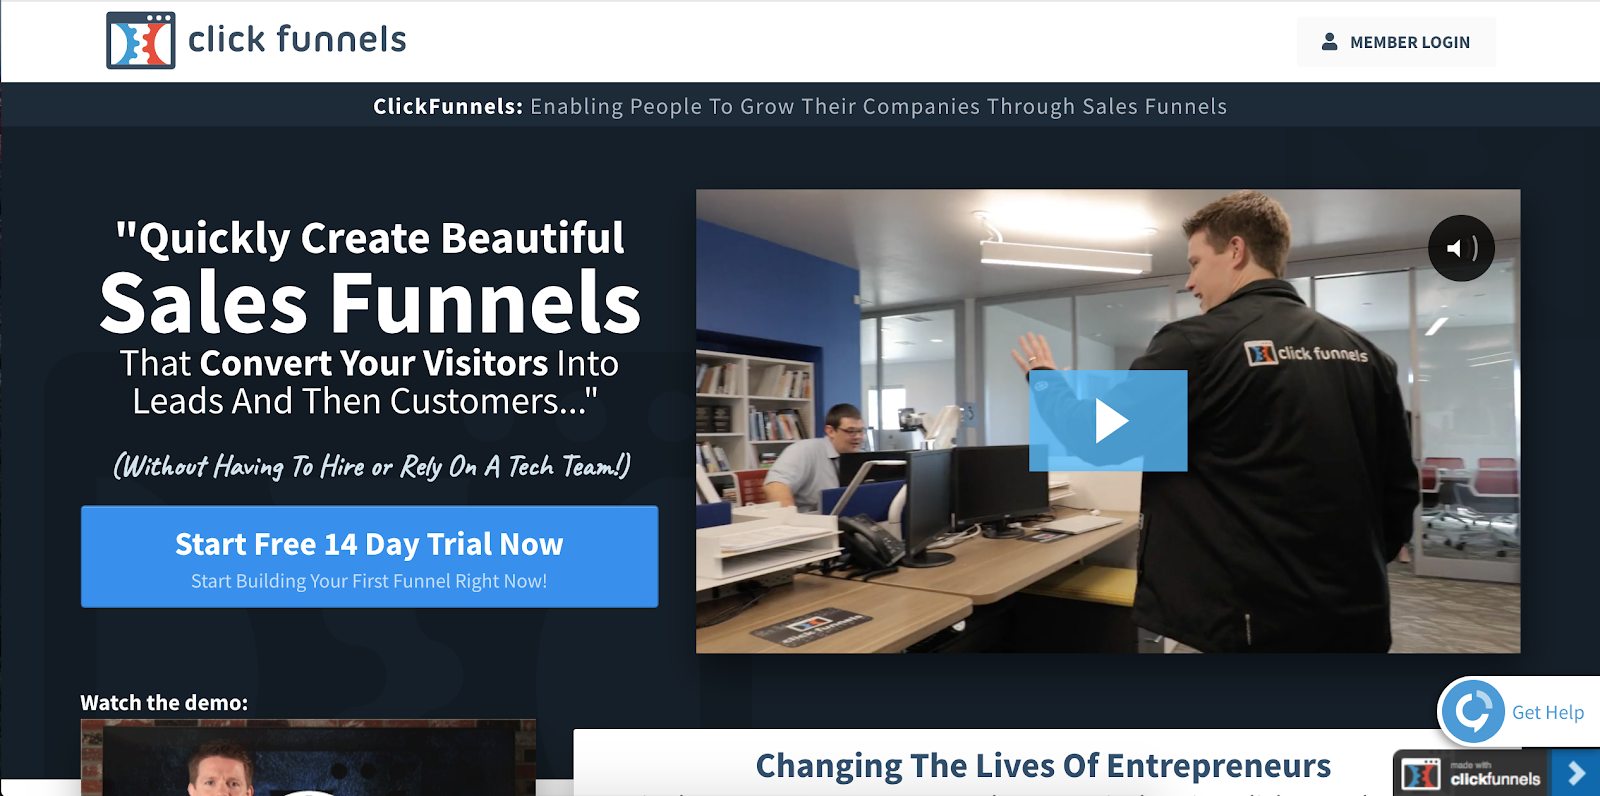 Top Marketing Tool Example #16 - ClickFunnels | 16 Powerful Marketing Tools You Haven't Considered (But Probably Should)